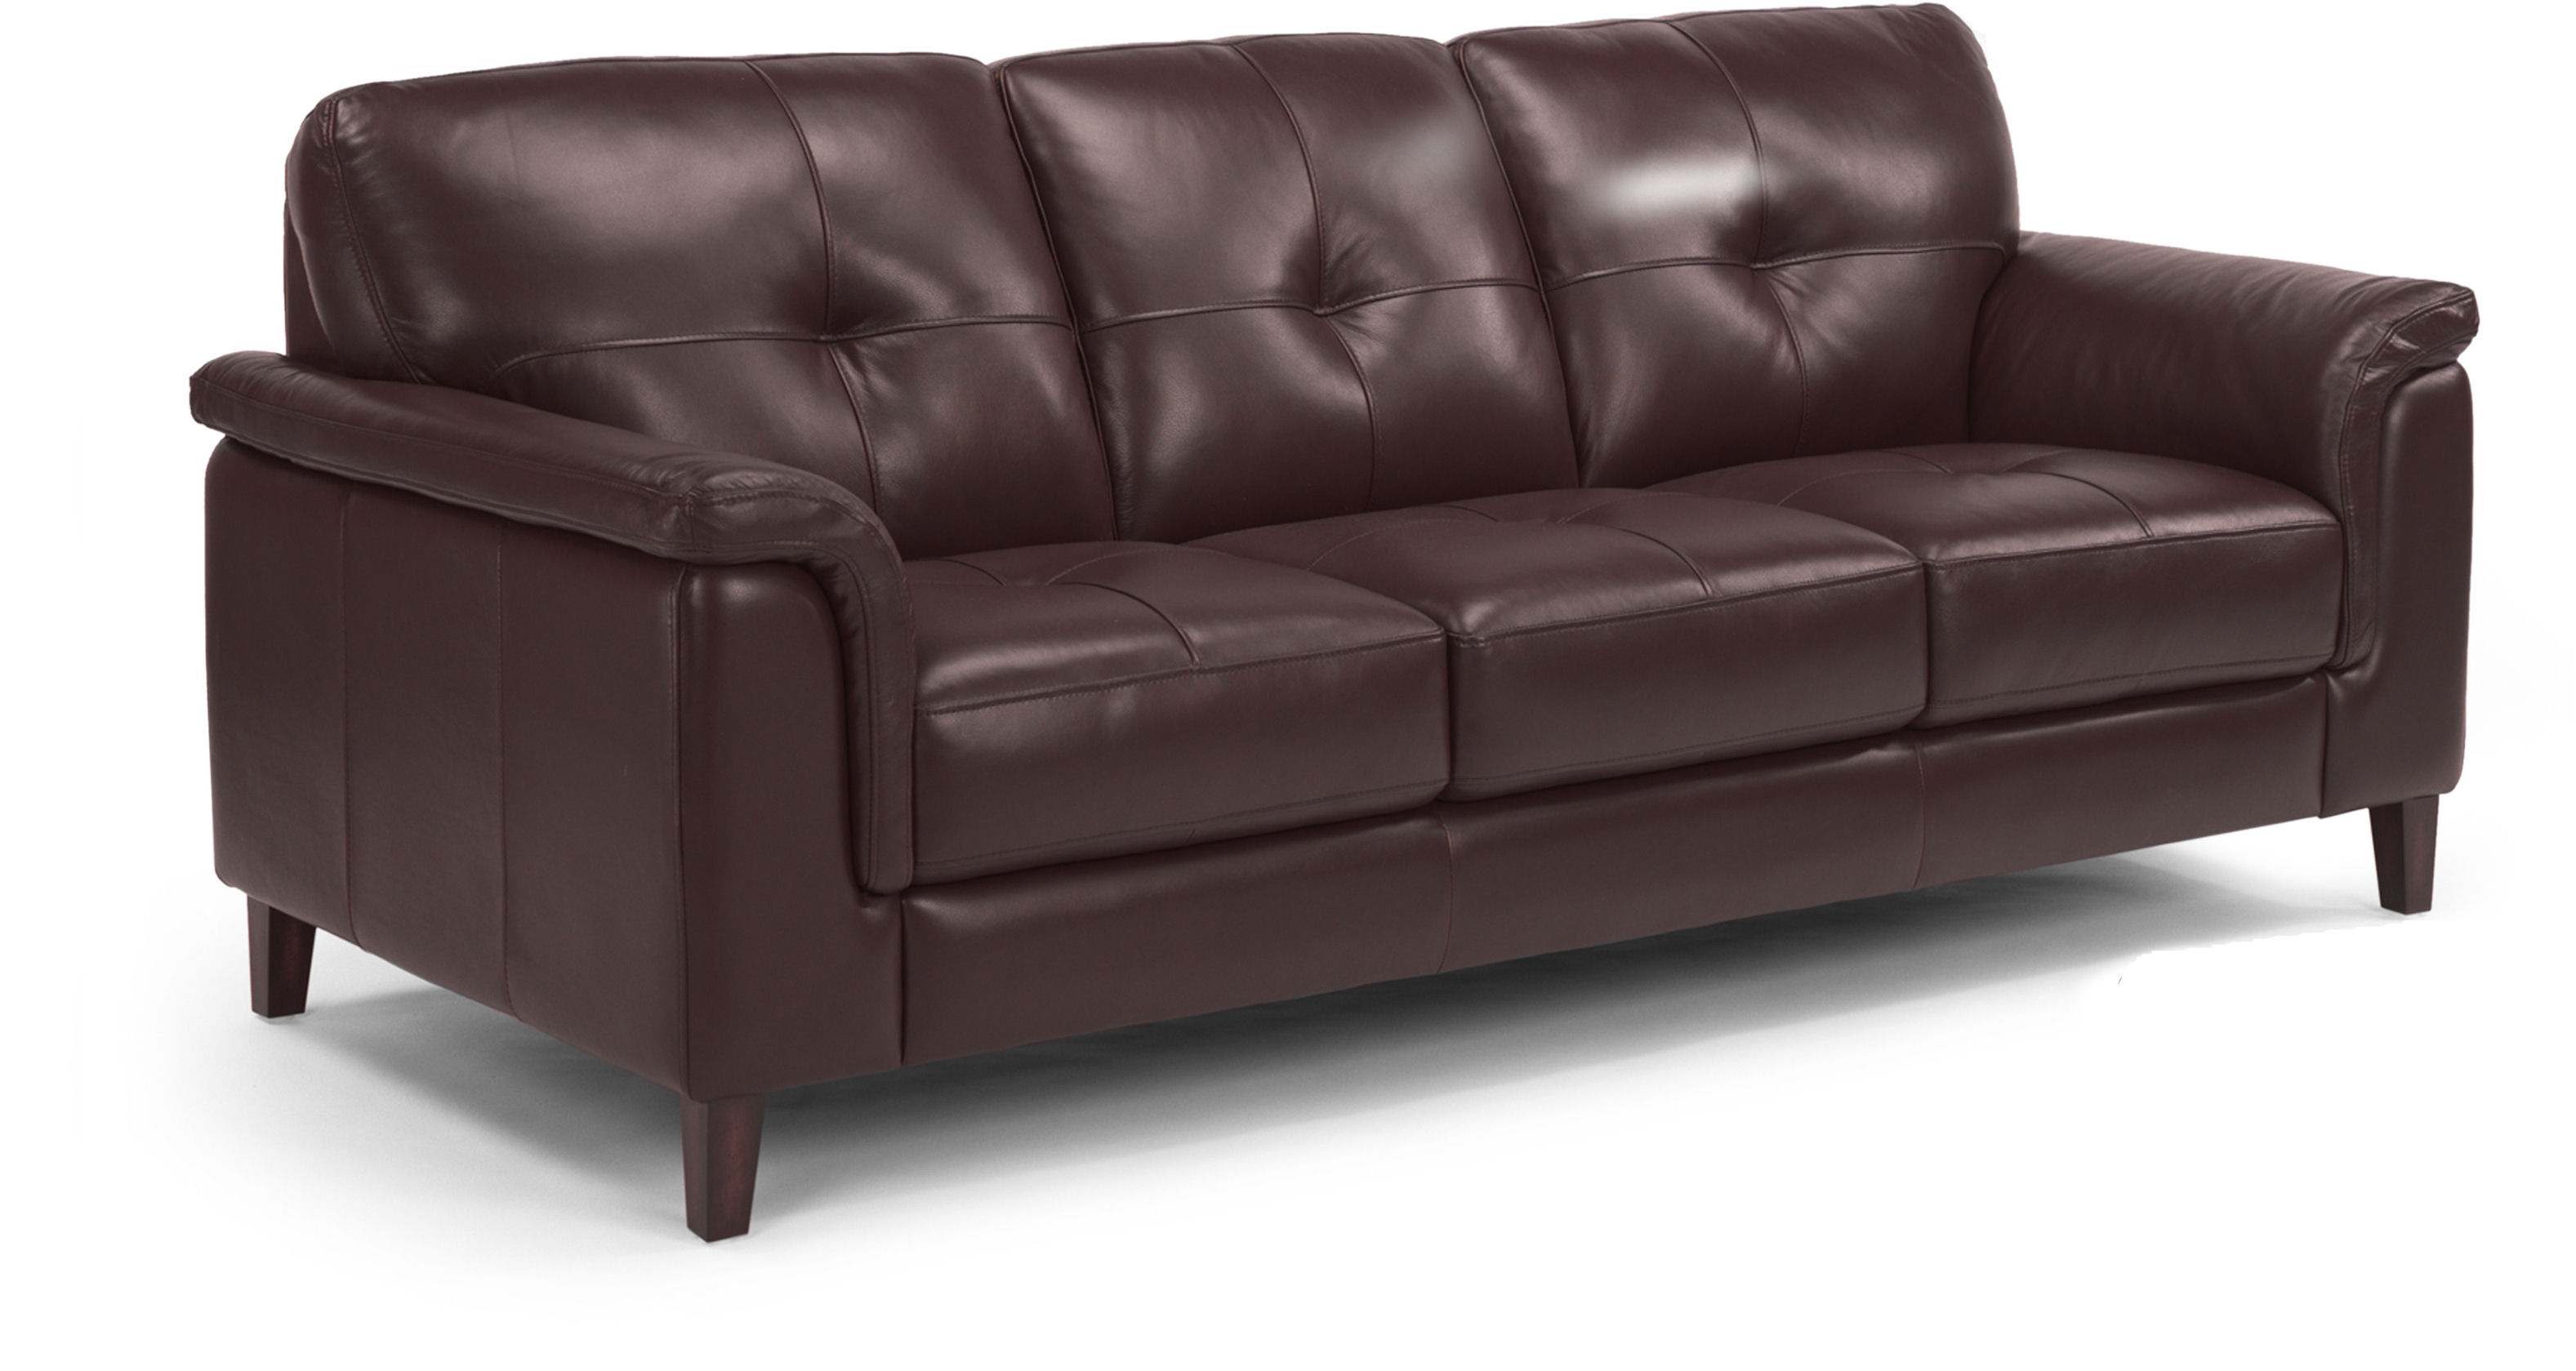 Flexsteel Couch  sc 1 st  Bell Furniture : flexsteel sectional leather - Sectionals, Sofas & Couches